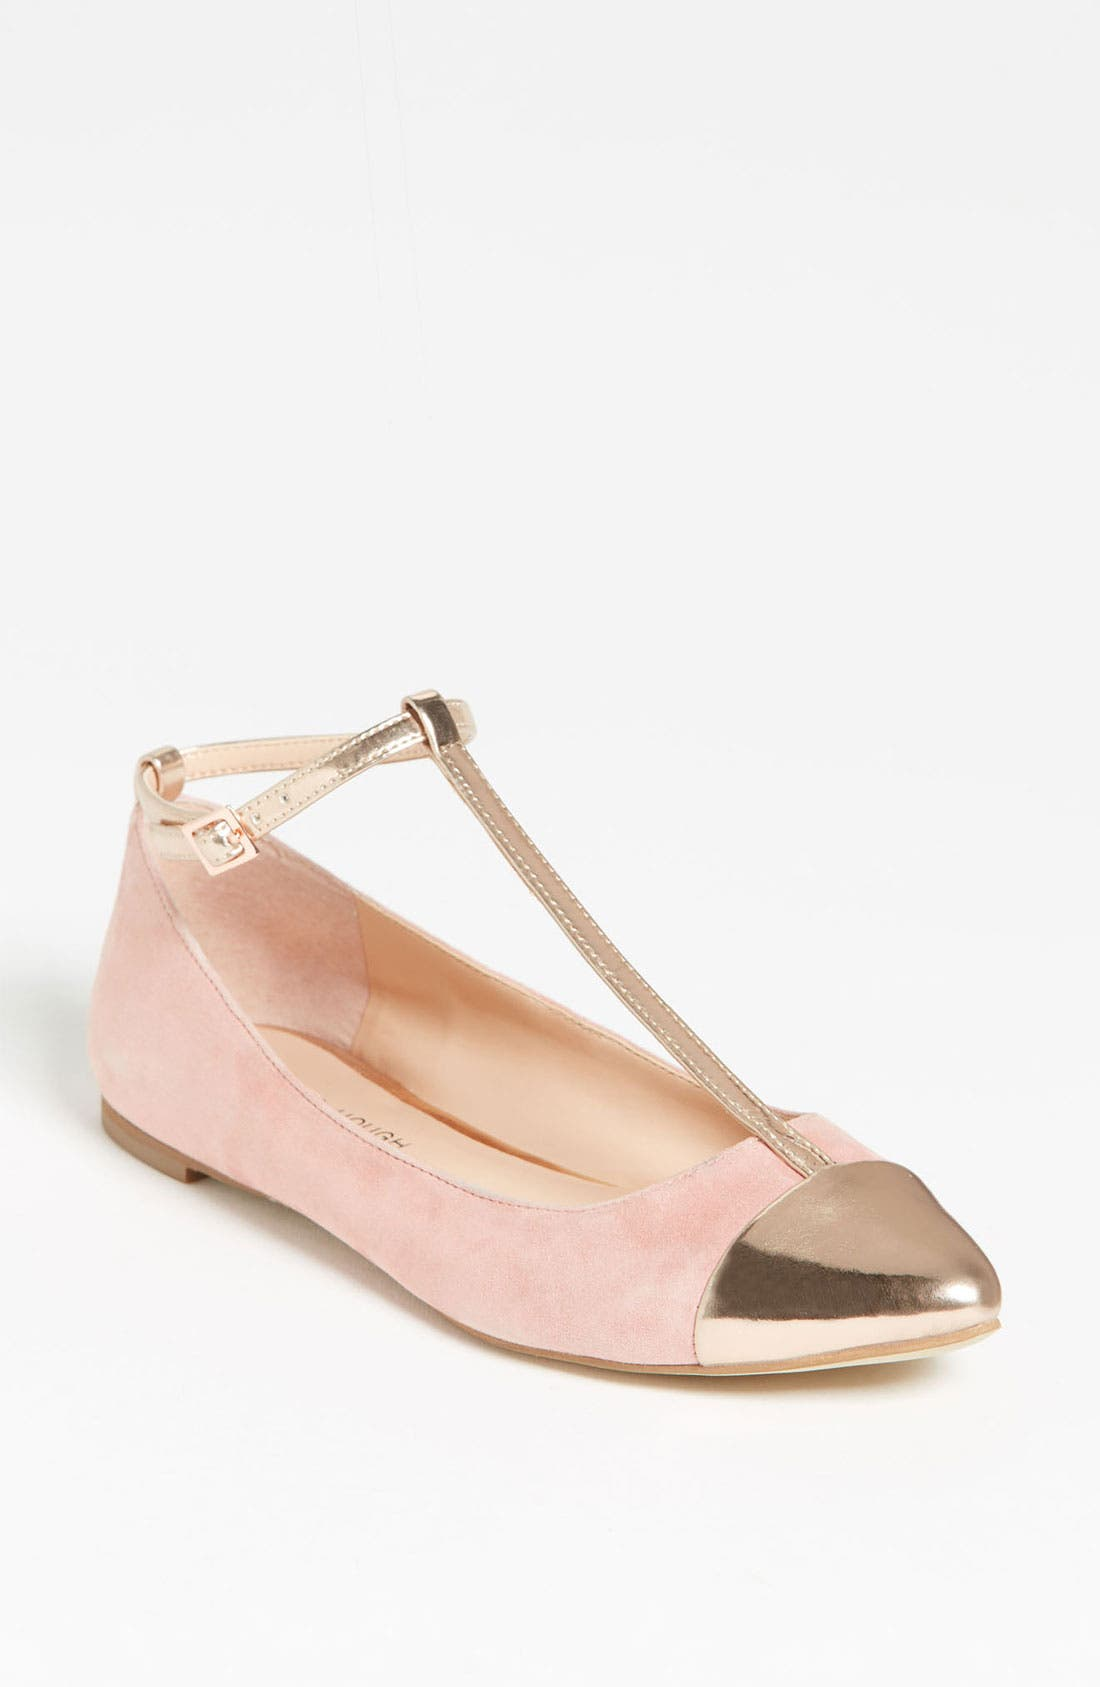 ,                             Julianne Hough for Sole Society 'Addy' Flat,                             Main thumbnail 36, color,                             680